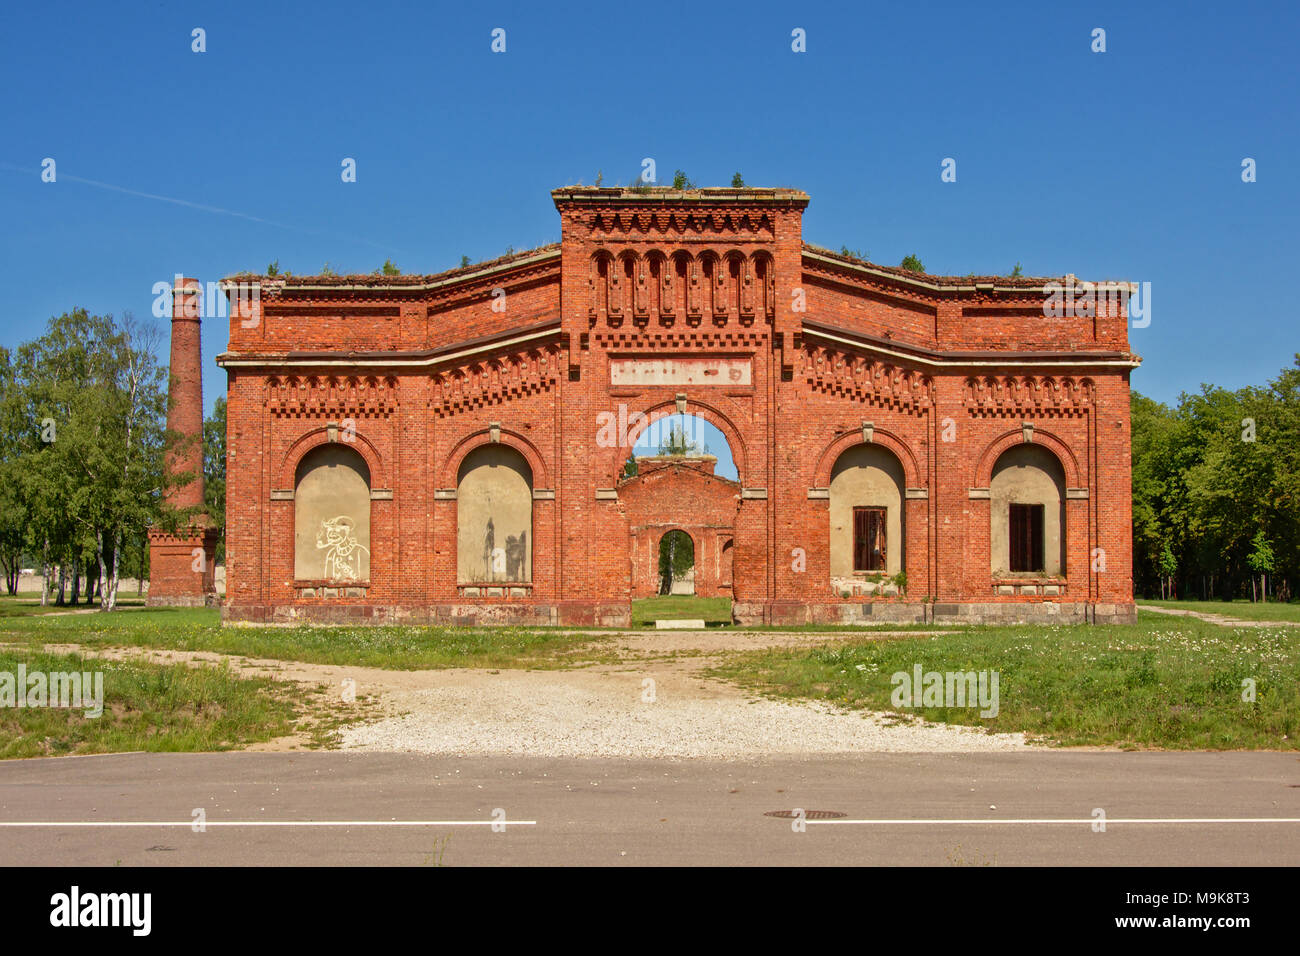 Remains of the brick stone naval port manege building, part of the old military Soviet base near Lieapaja, Latvia Stock Photo